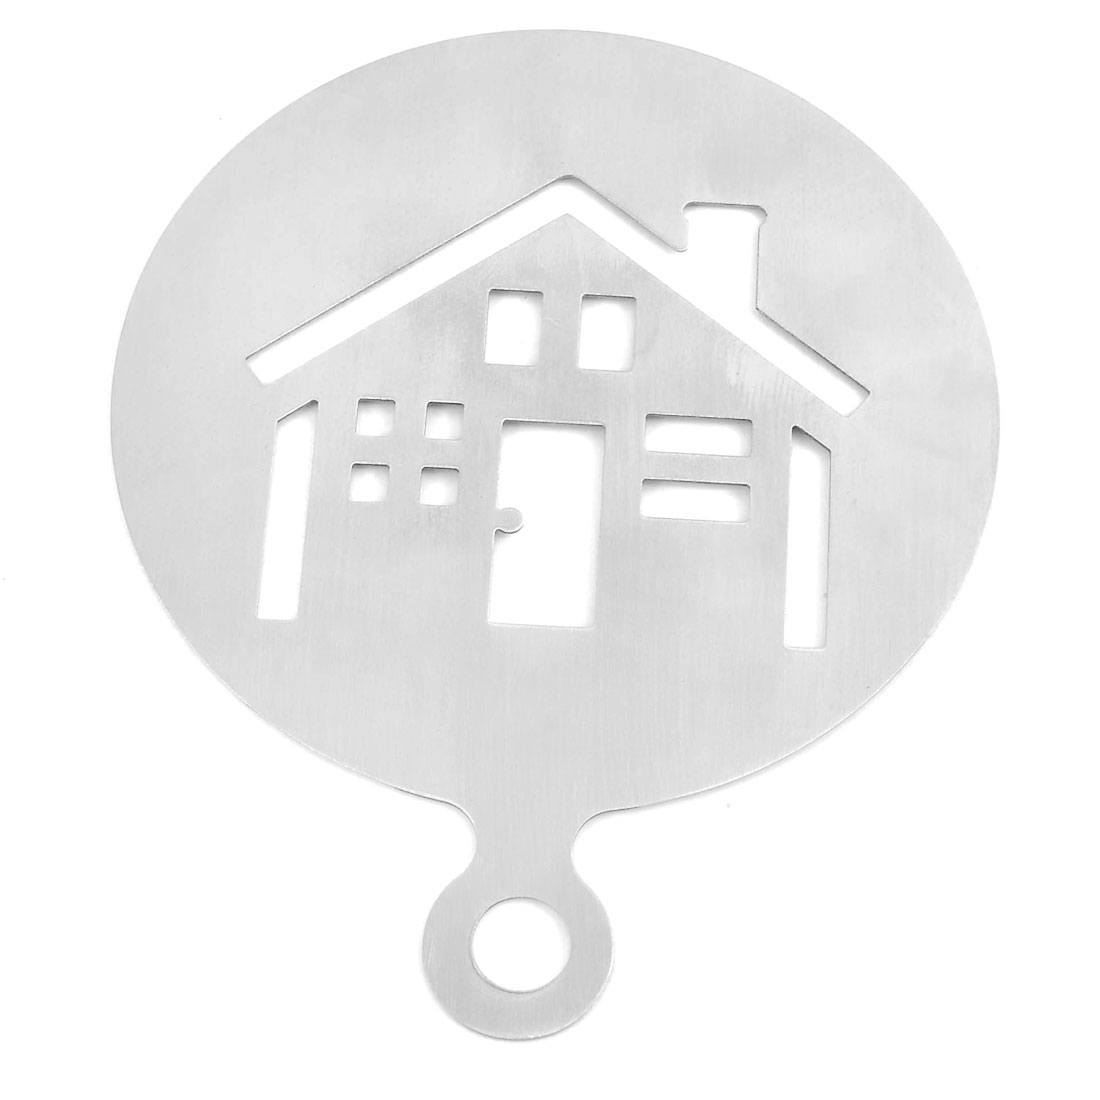 Home Kitchen Stainless Steel House Design Baking Stencil Coffee Decorating Tool Mold